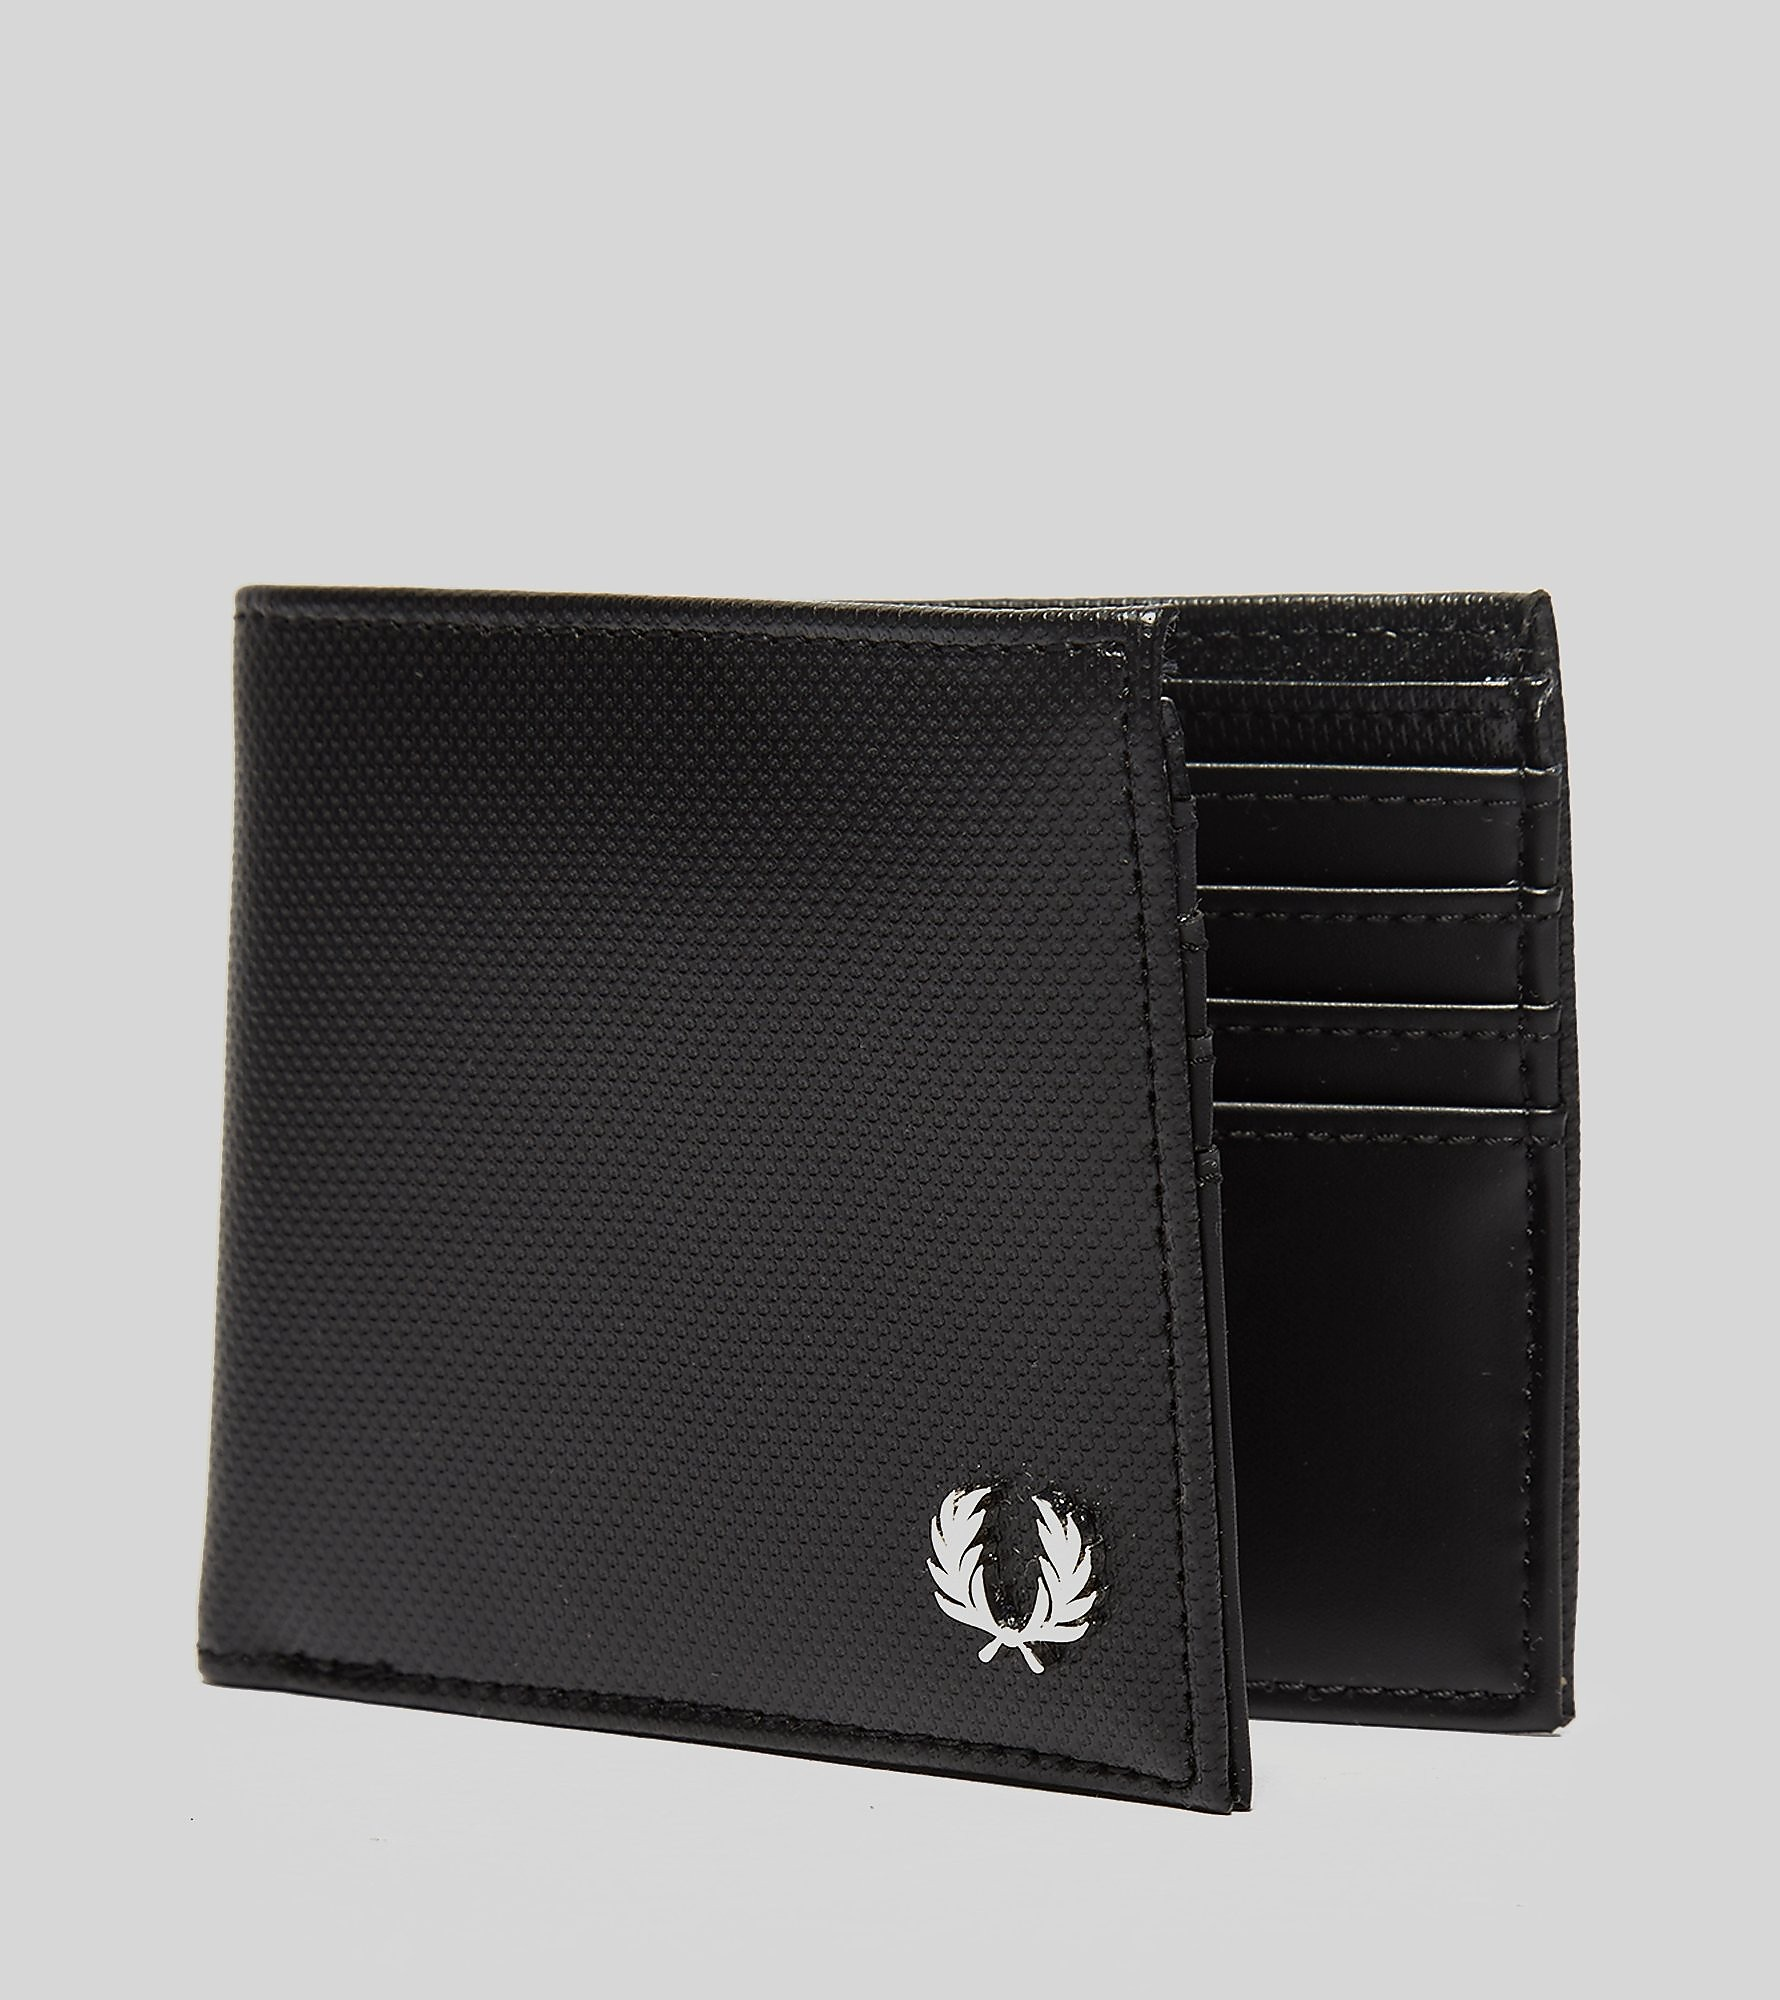 Fred Perry Pique Fold Wallet